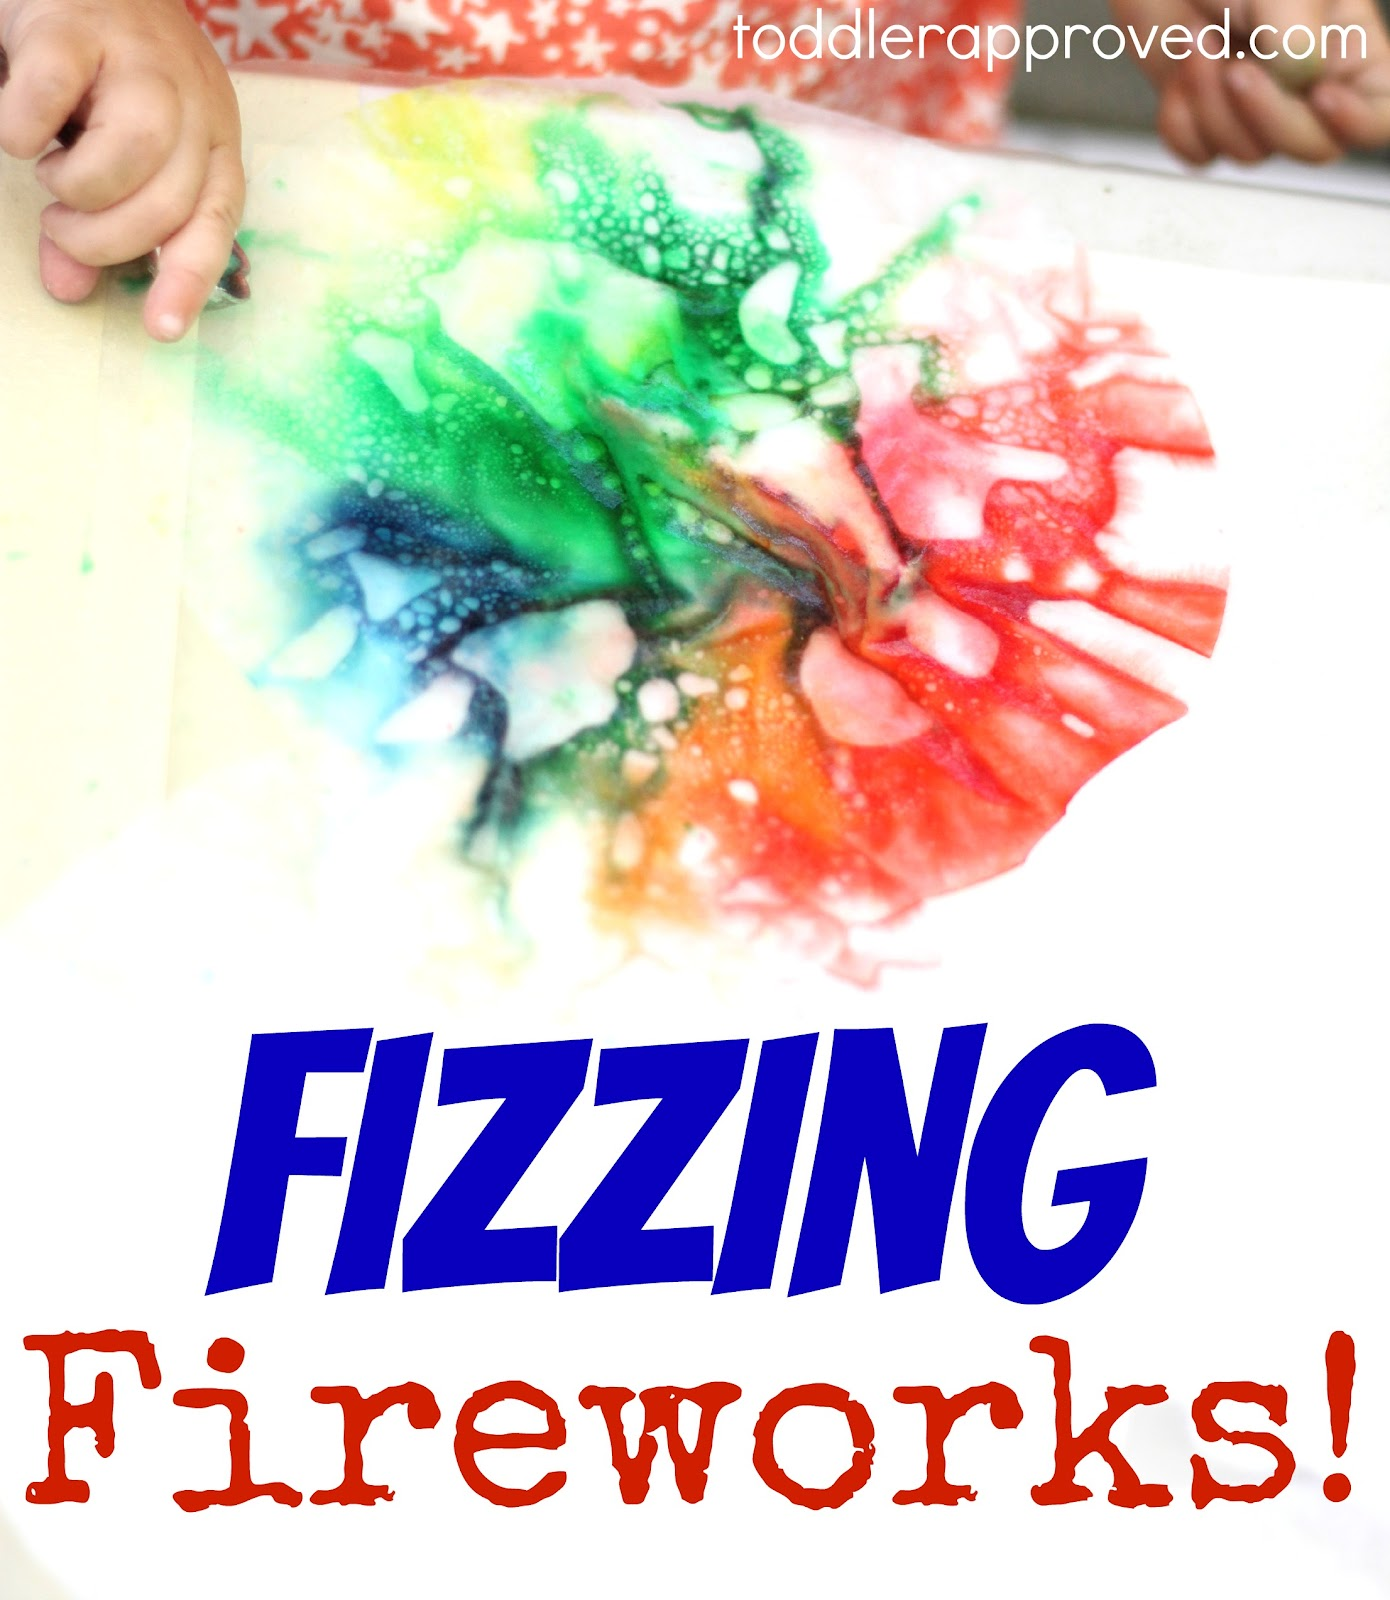 Toddler Approved Fizzing Fireworks Readforgood